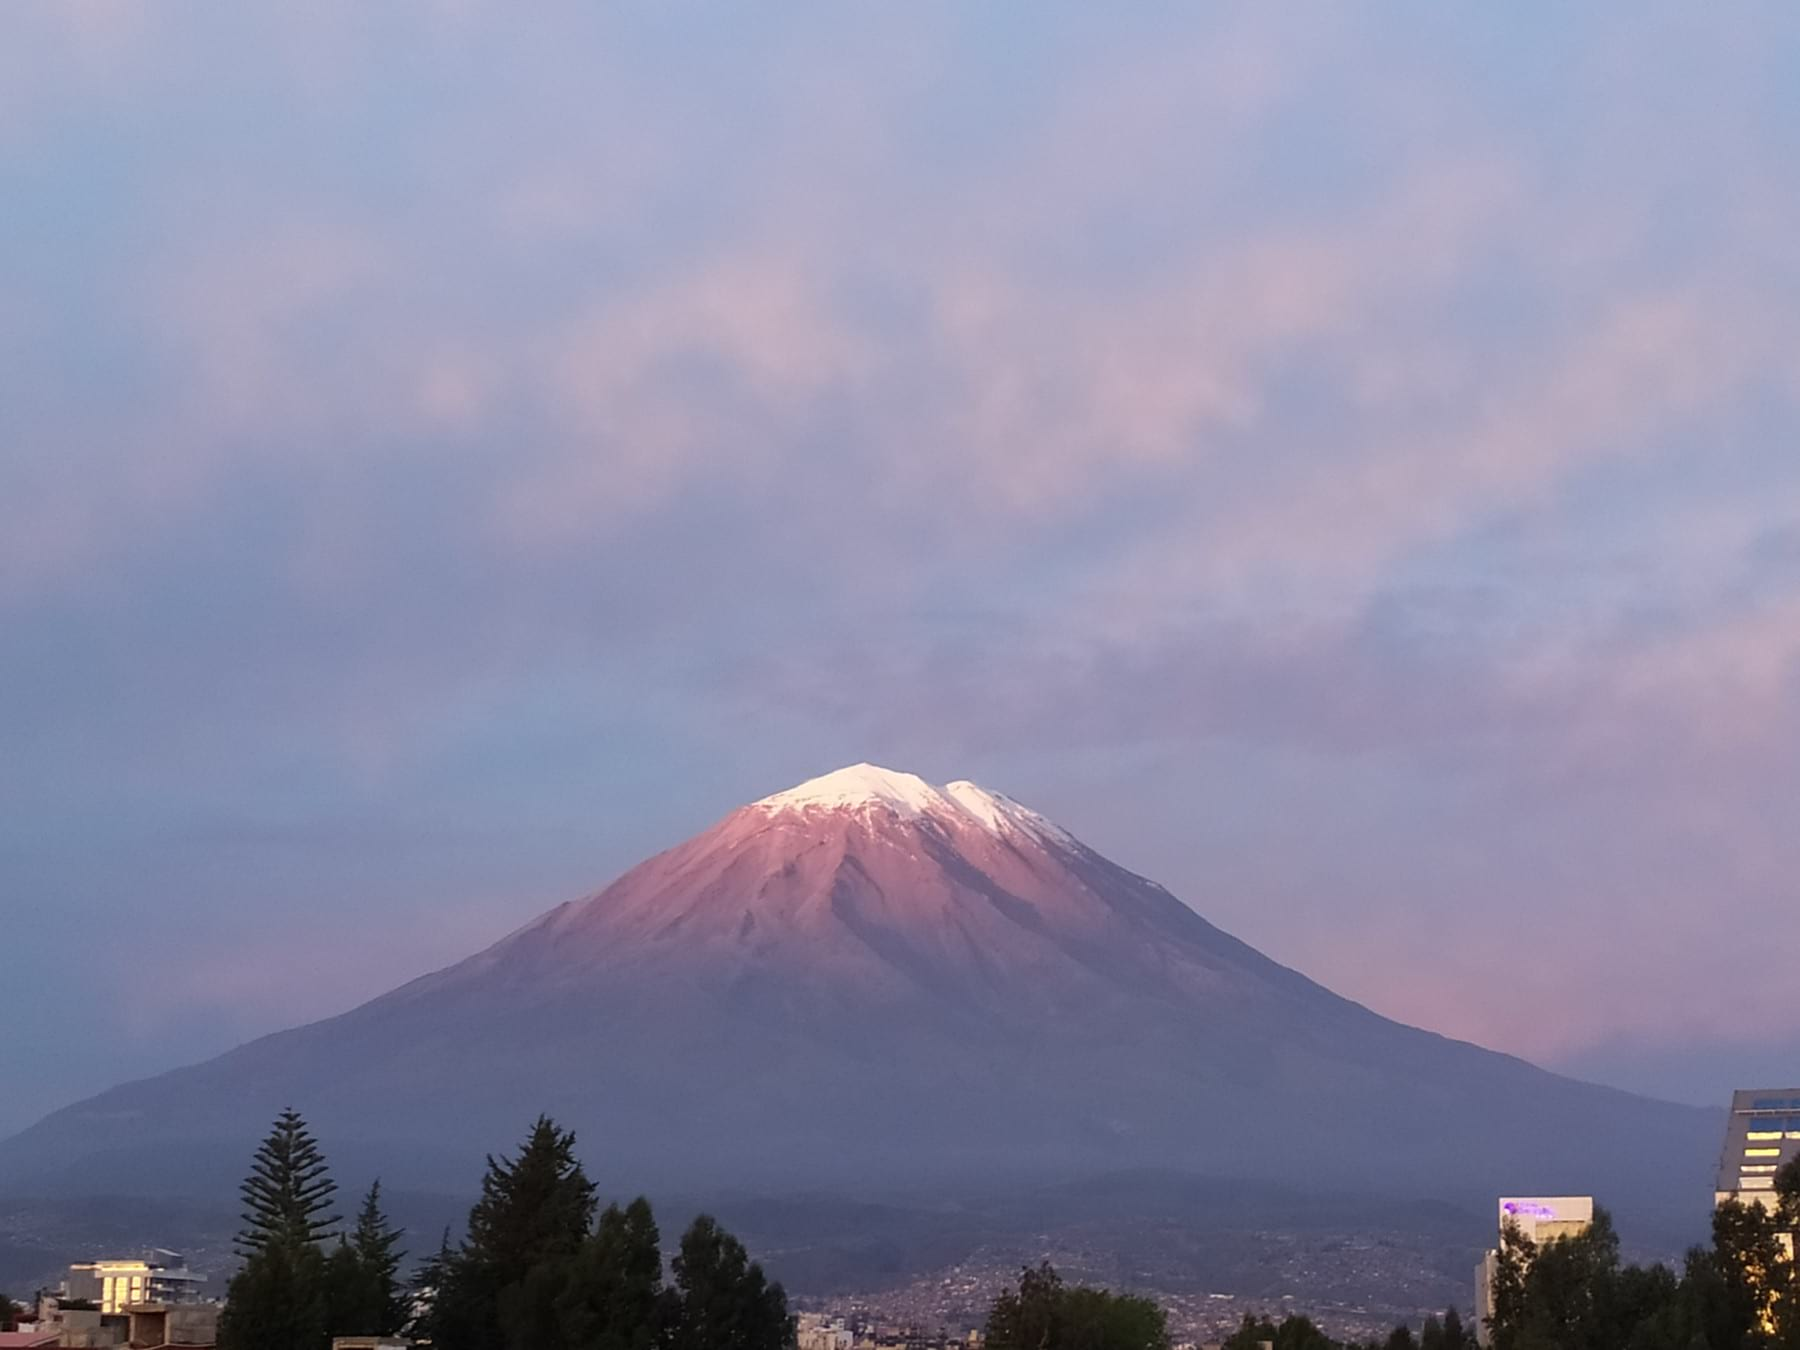 The Volcano Misti in Arequipa in Peru